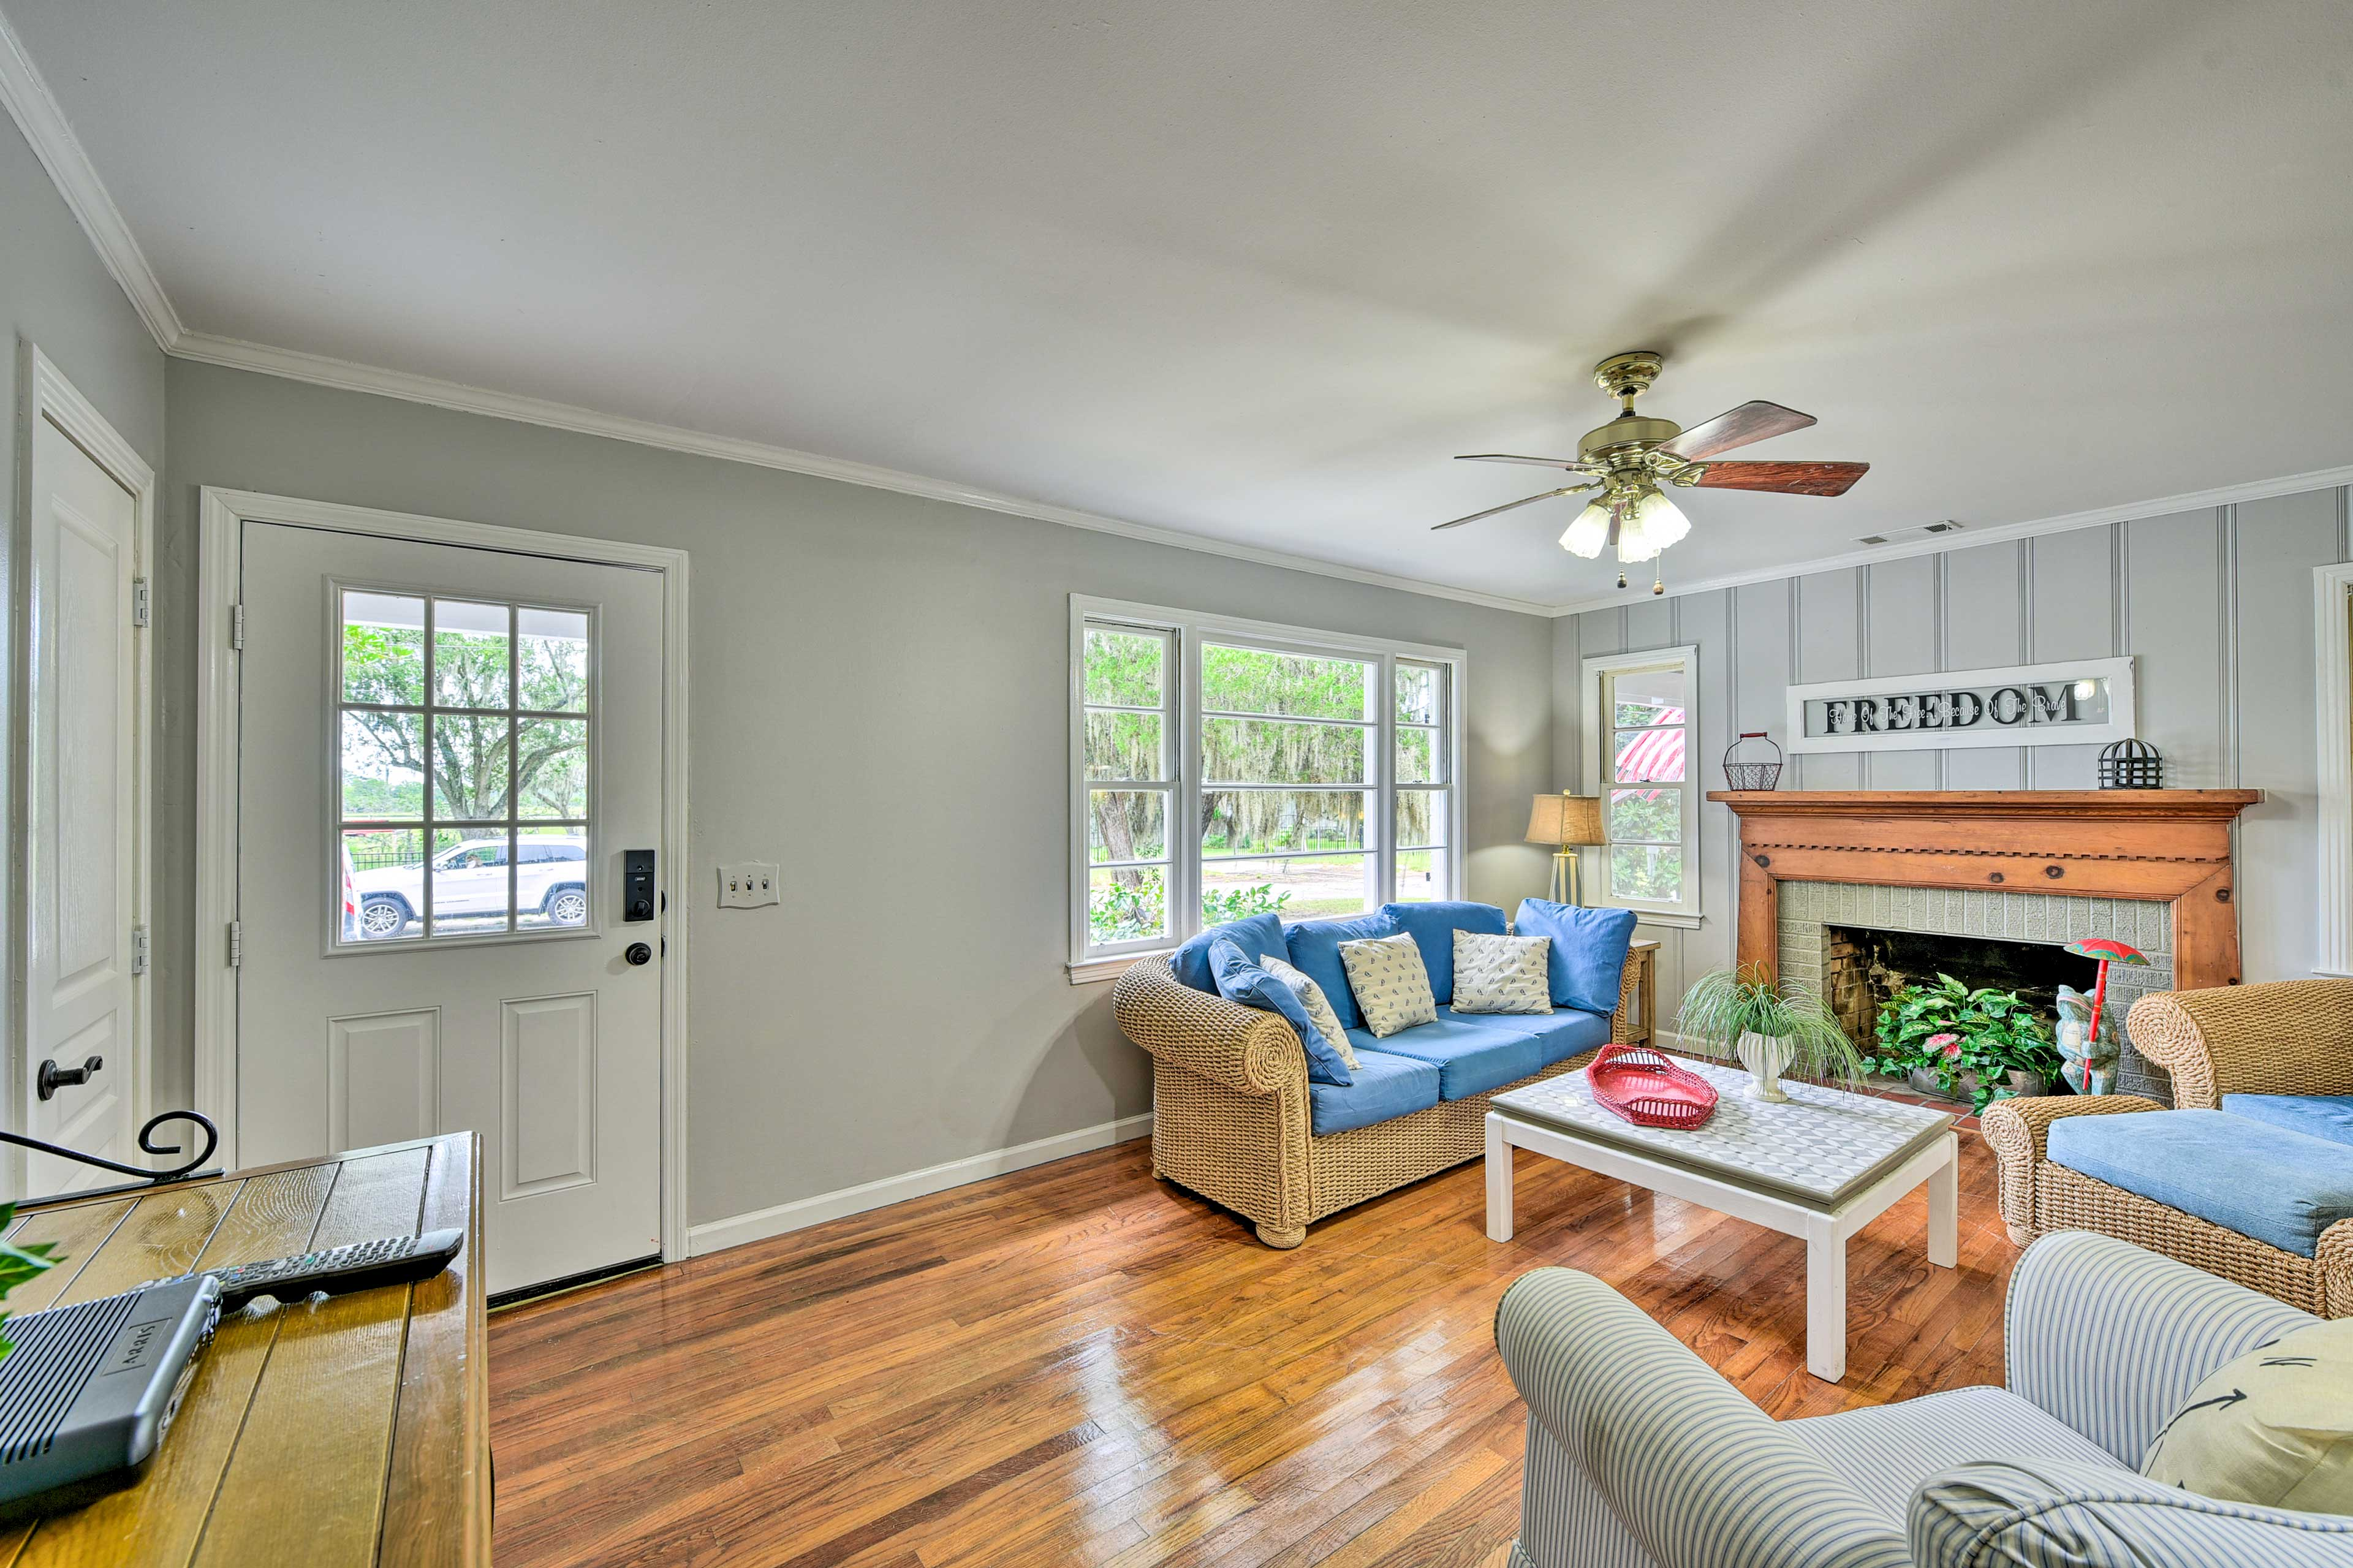 The living room boasts hardwood floors and a decorative fireplace.